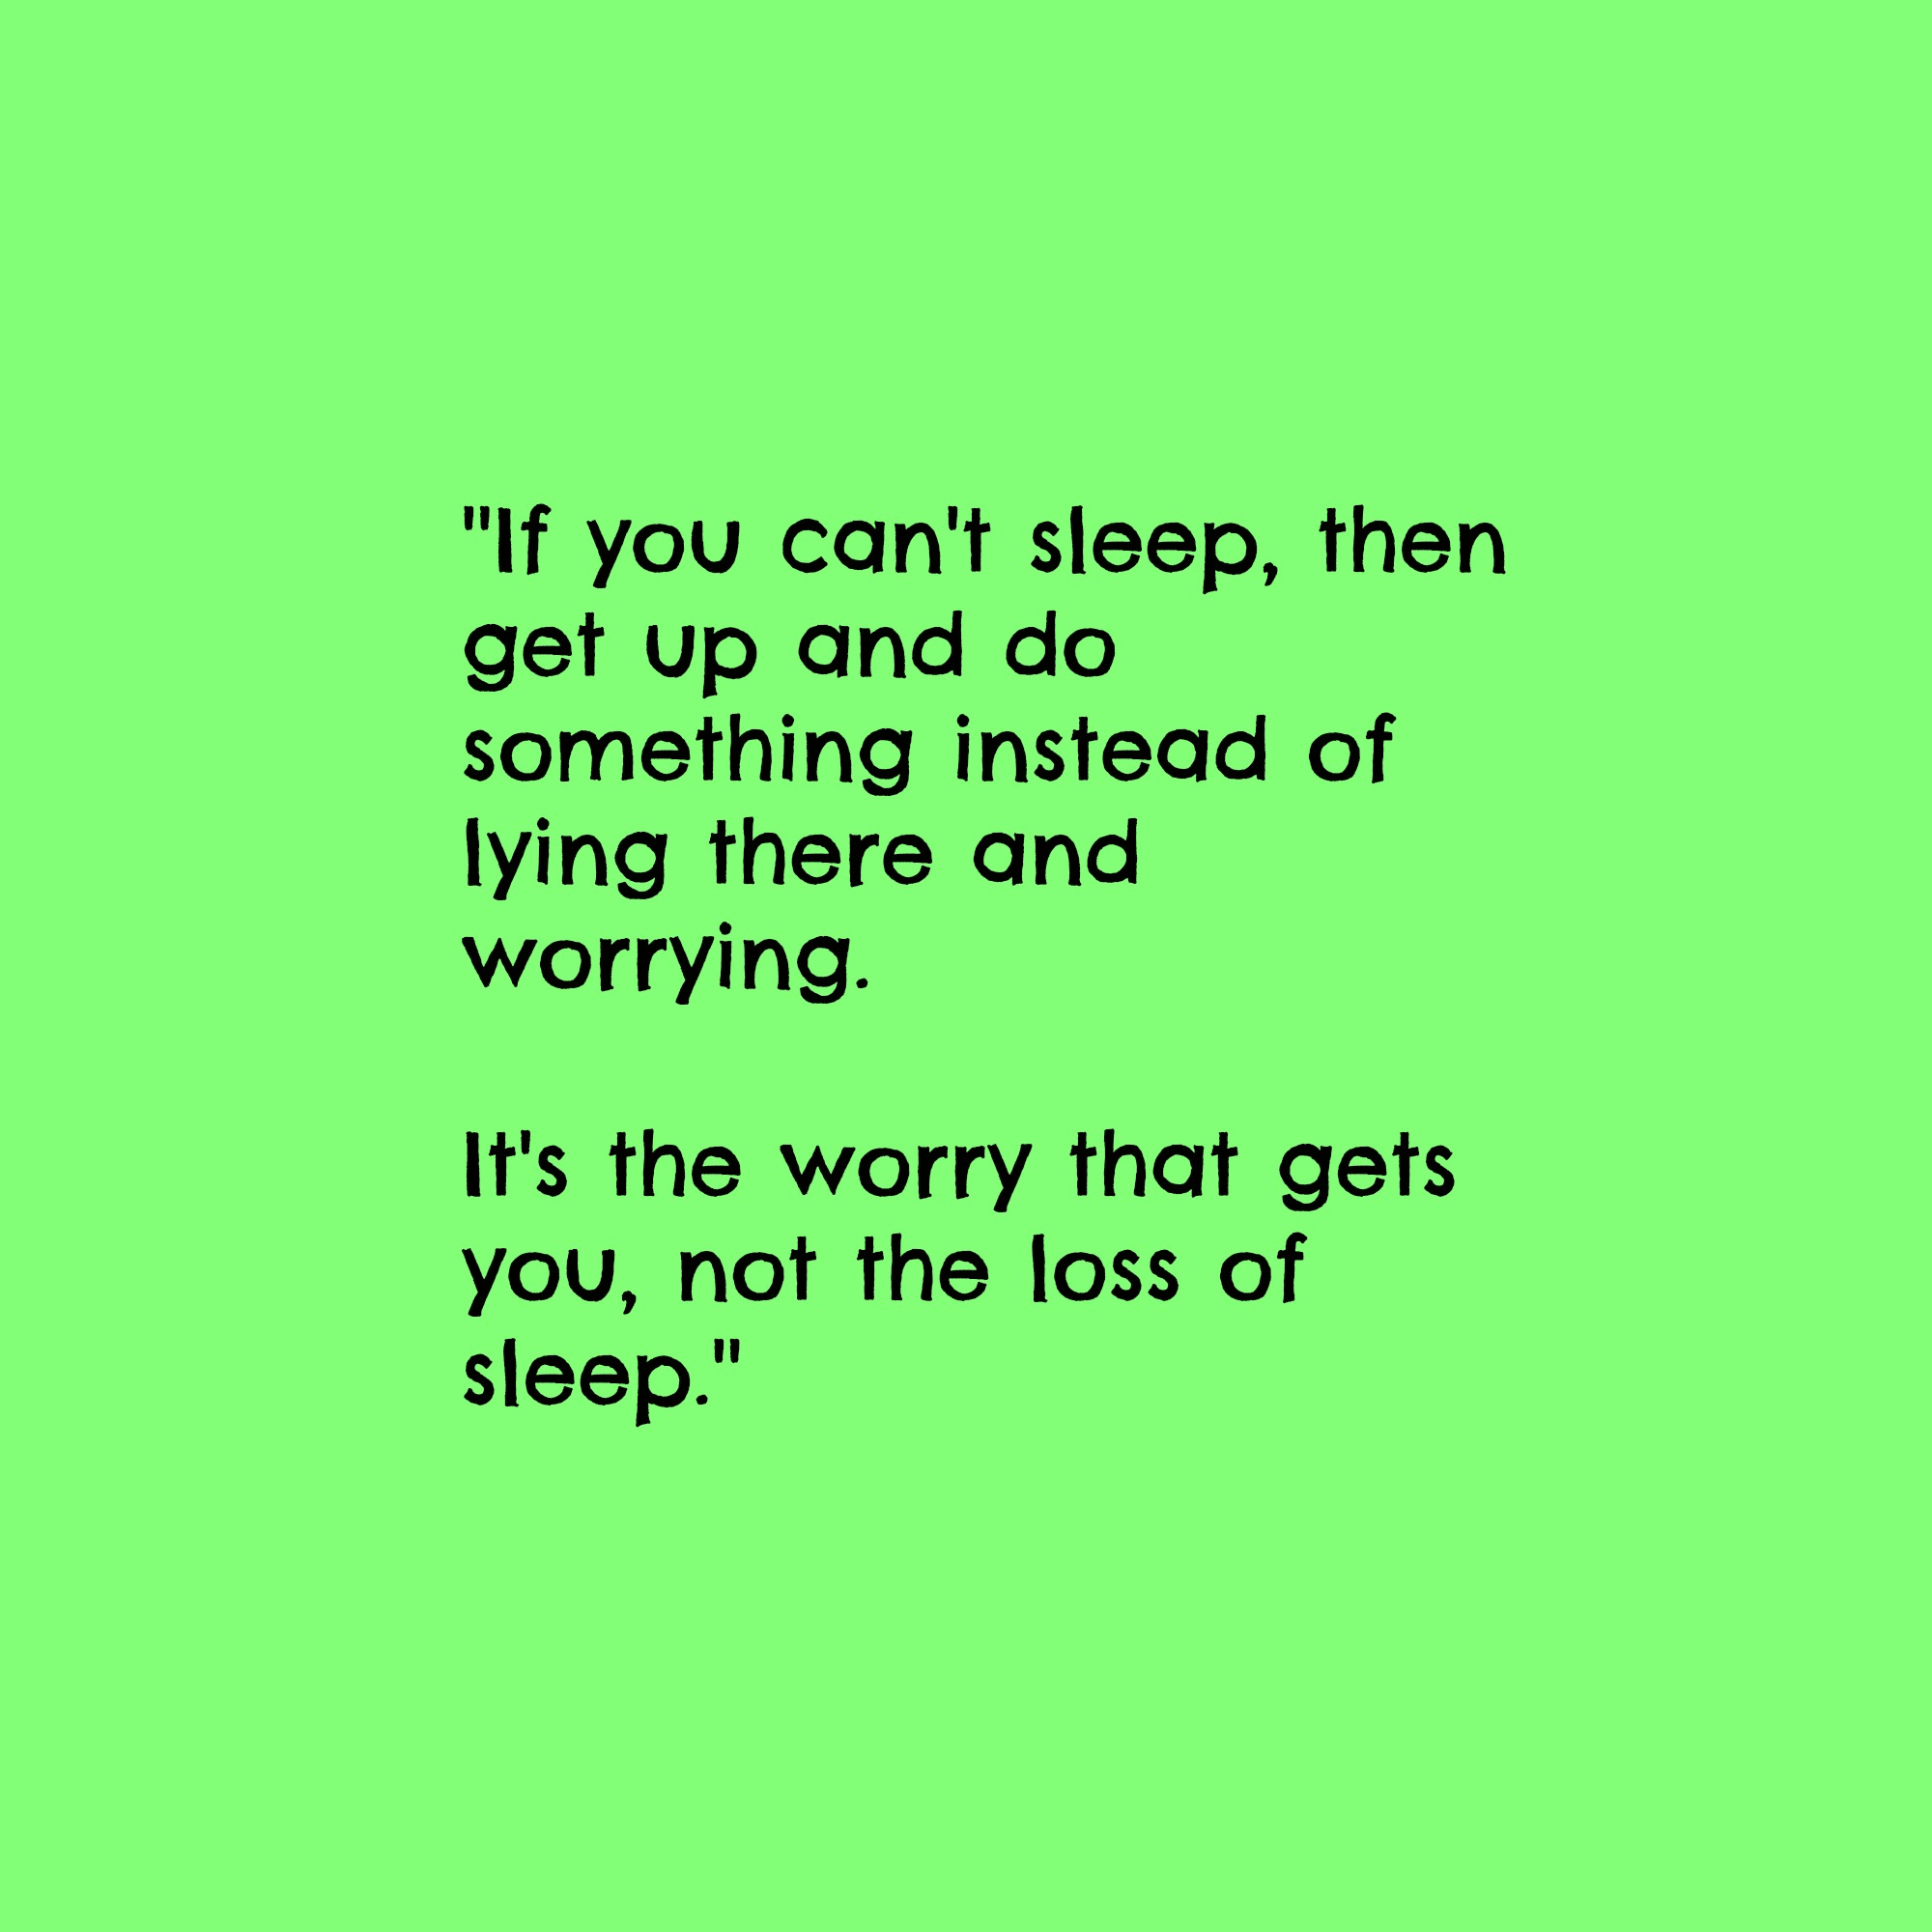 Ways to Stop Worrying - Do Something About It - Don't Lose Sleep